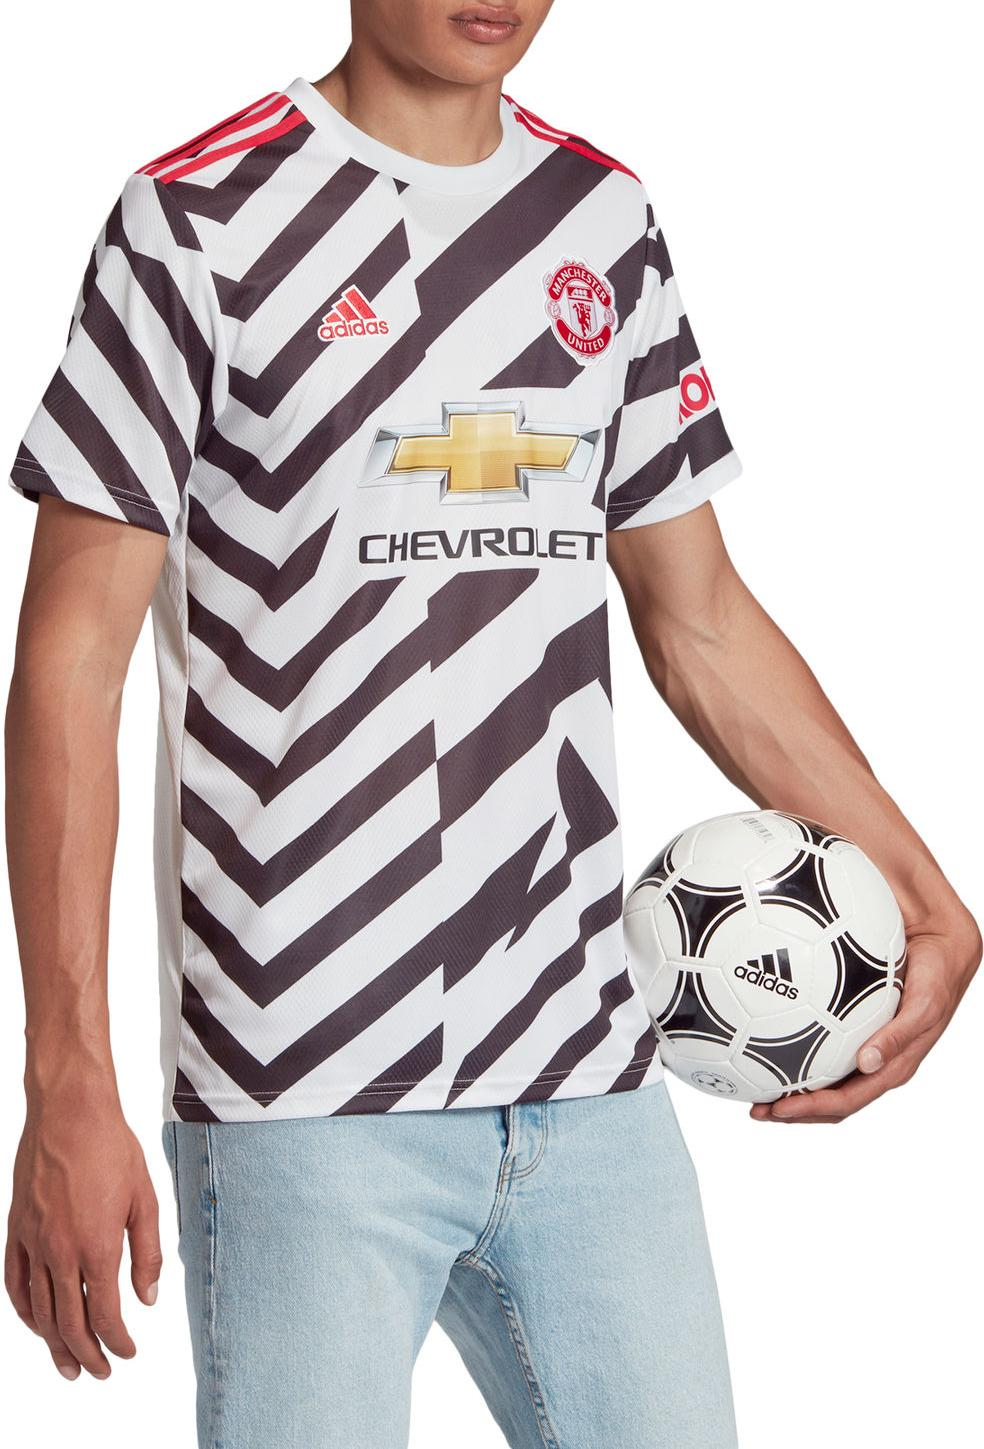 Dres adidas MANCHESTER UNITED 3rd JERSEY 2020/21